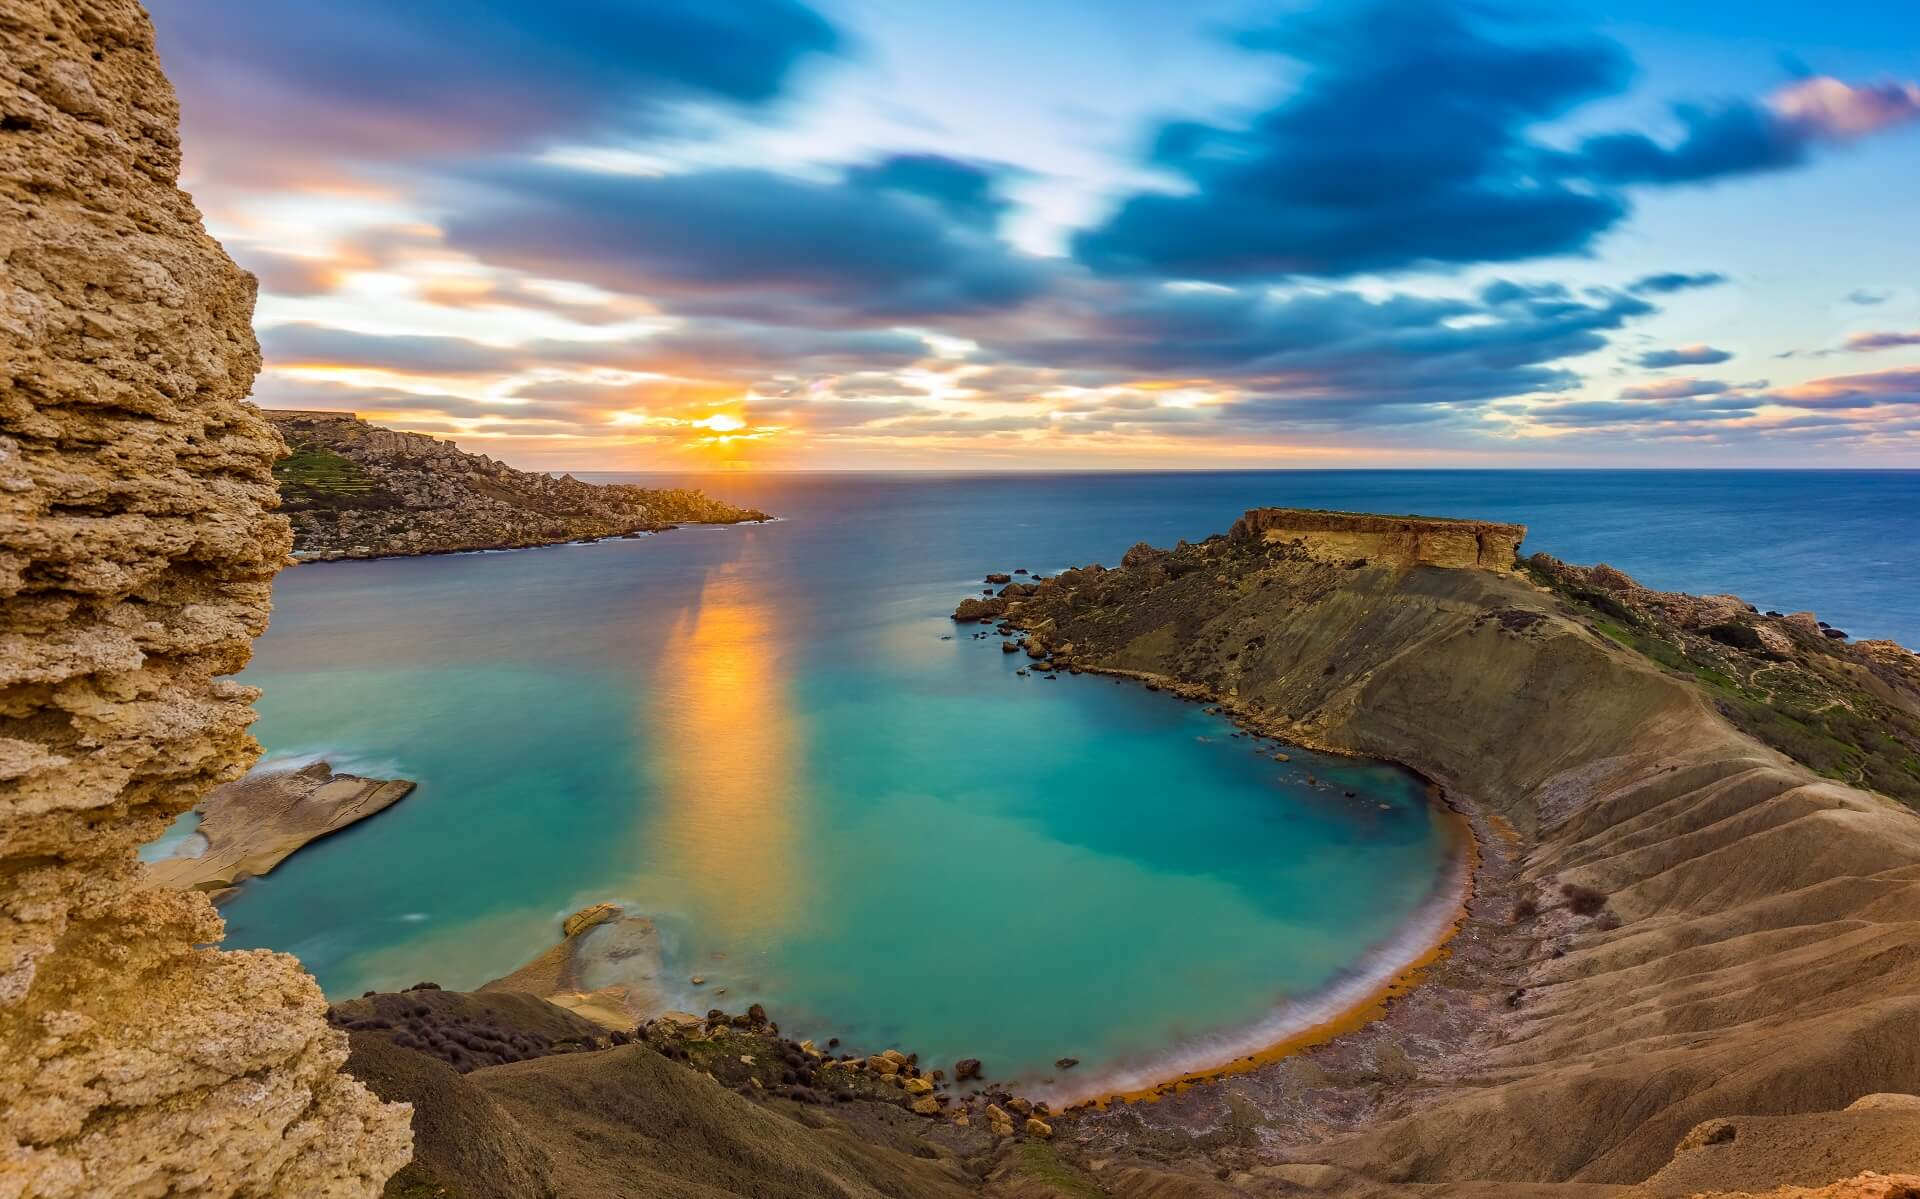 Mgarr Malta Panorama Of Gnejna Bay The Most Beautiful Beach In Malta At Sunset With Beautiful Colorful Sky And Golden Rocks Taken From Ta Lippija Shutterstock_662879173